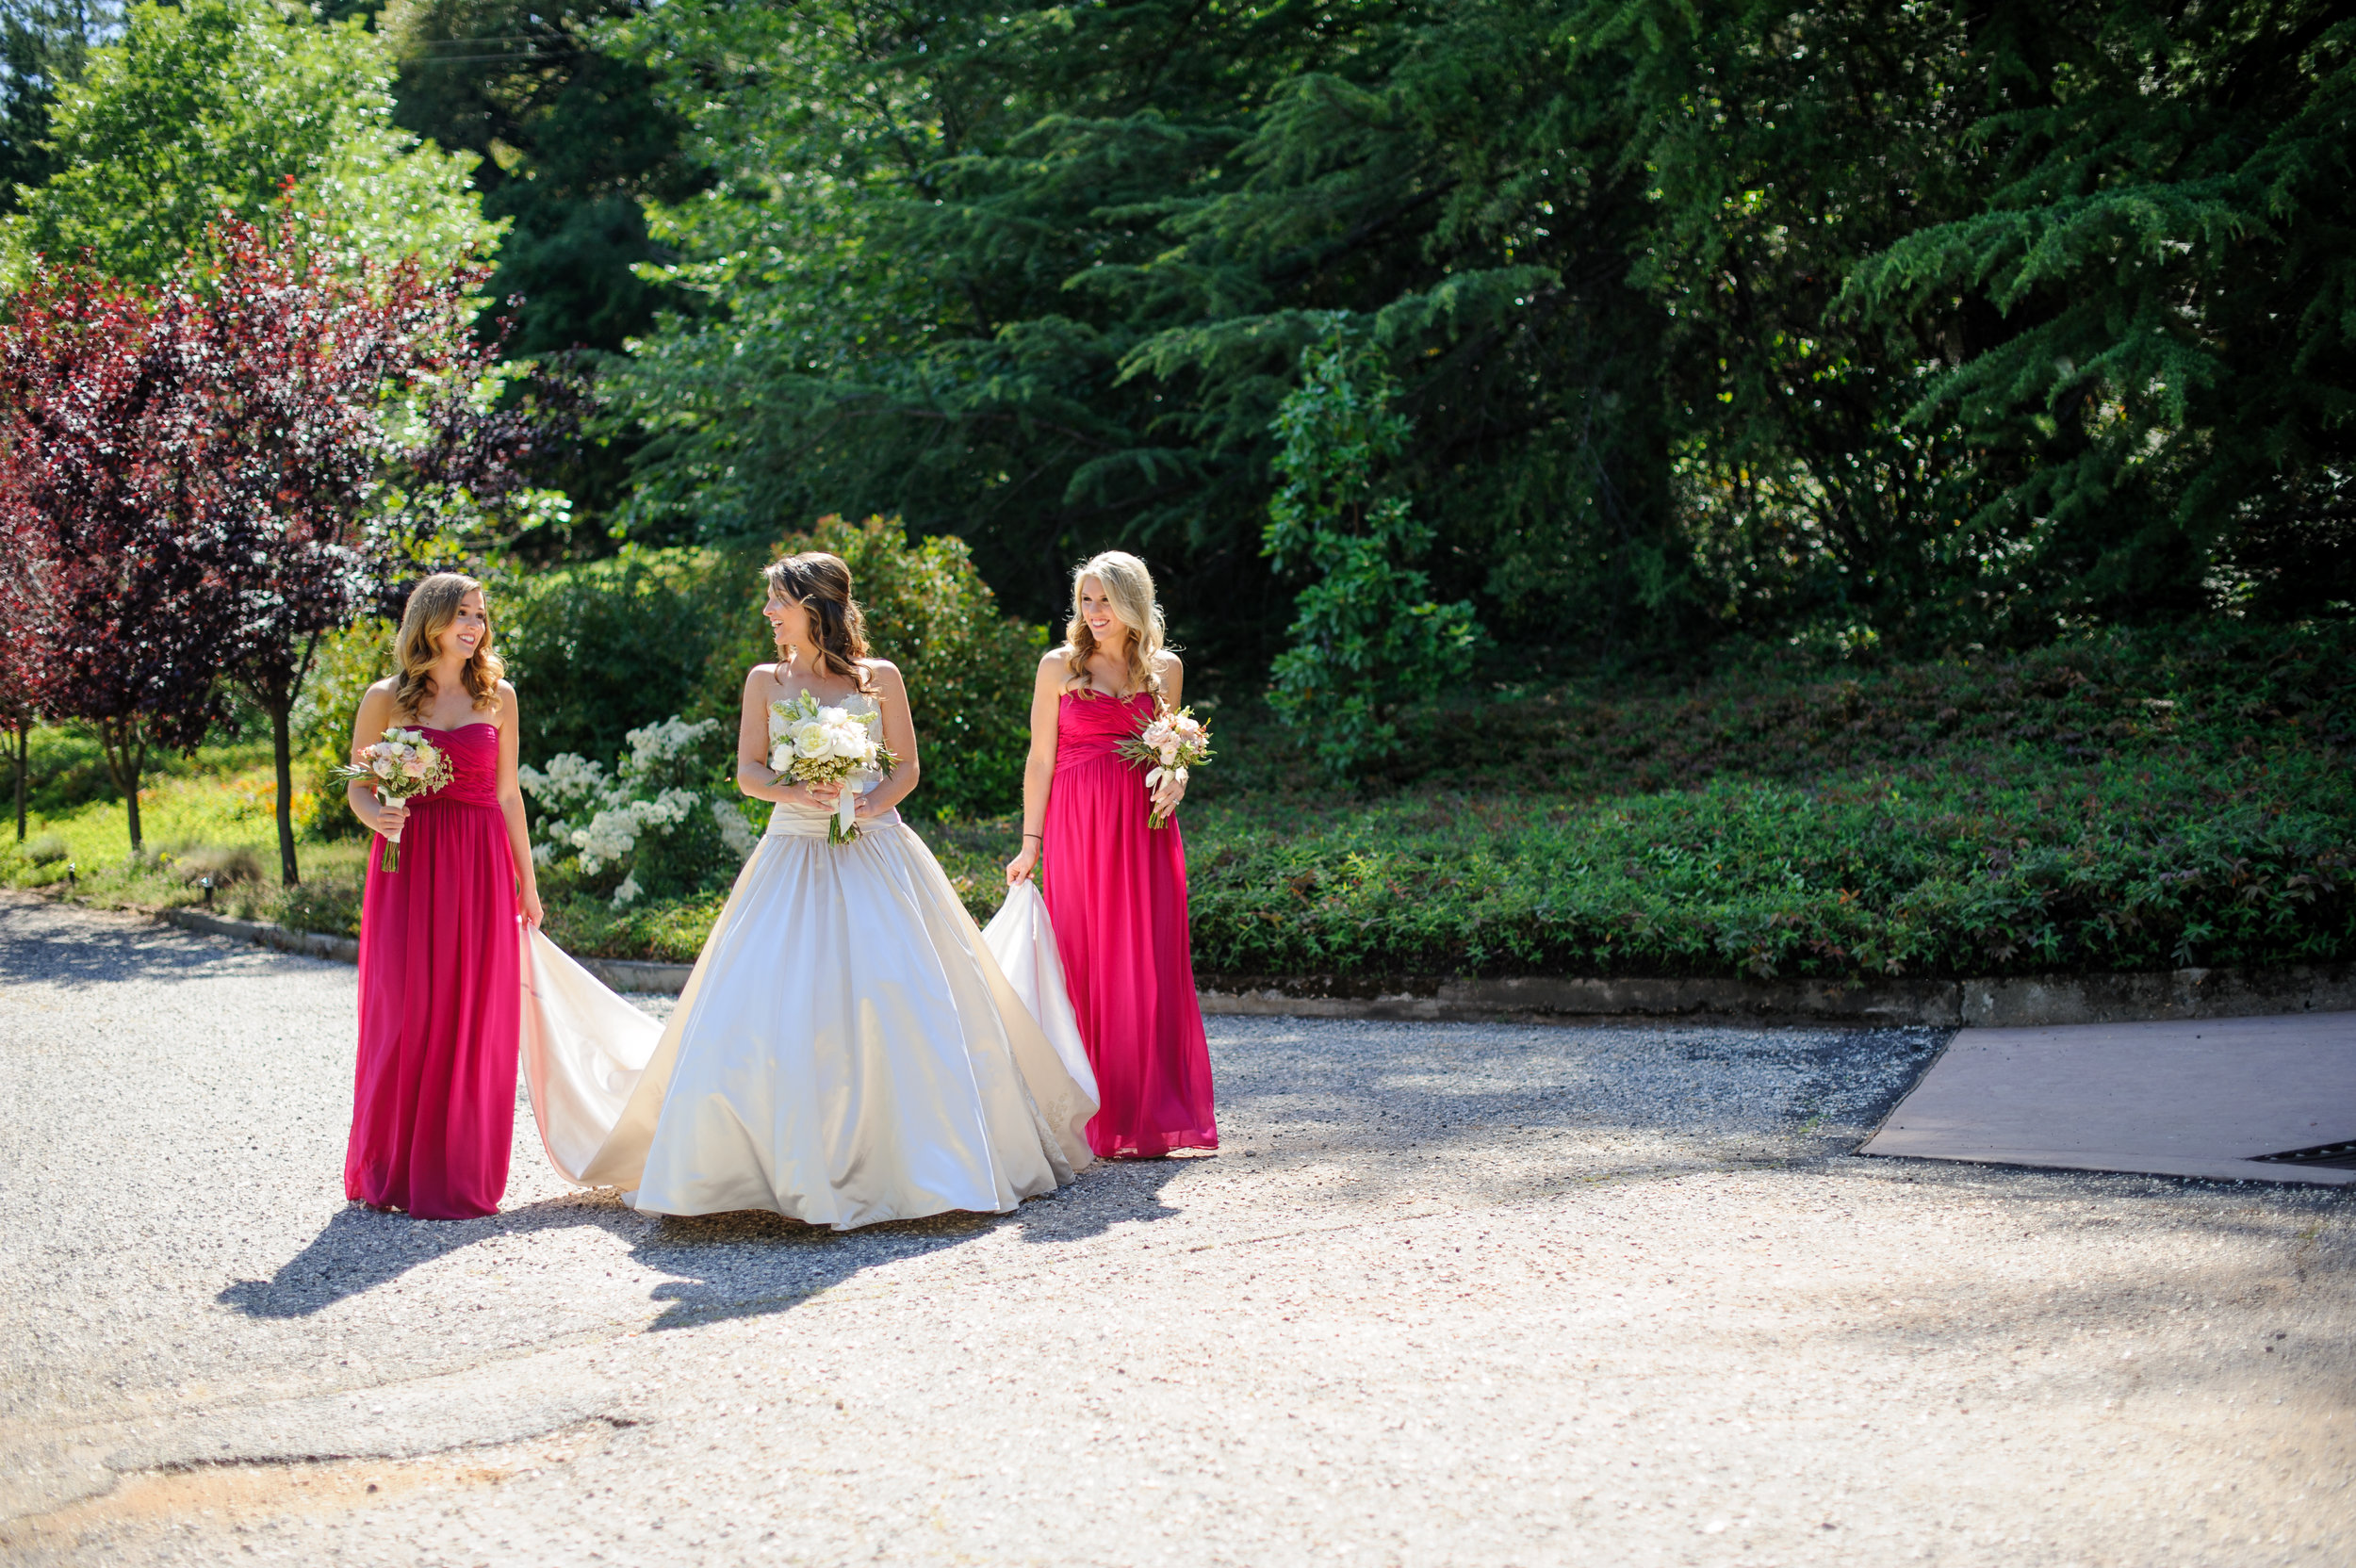 lindsey-charlie-056-monte-verde-inn-foresthill-wedding-photographer-katherine-nicole-photography.JPG